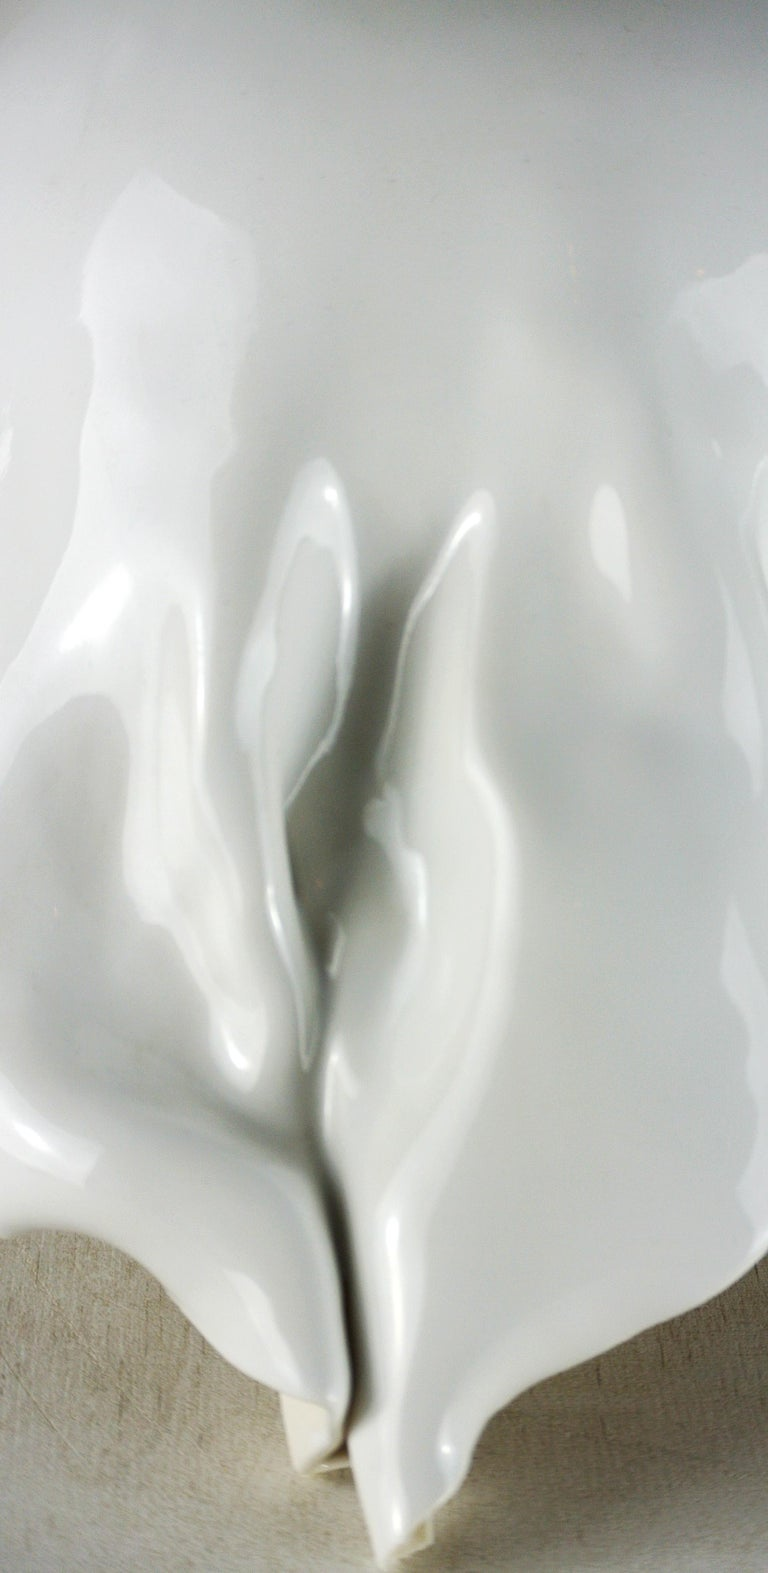 Hand-Crafted Contemporary White Porcelain Object by Danish Artist Christine Roland For Sale